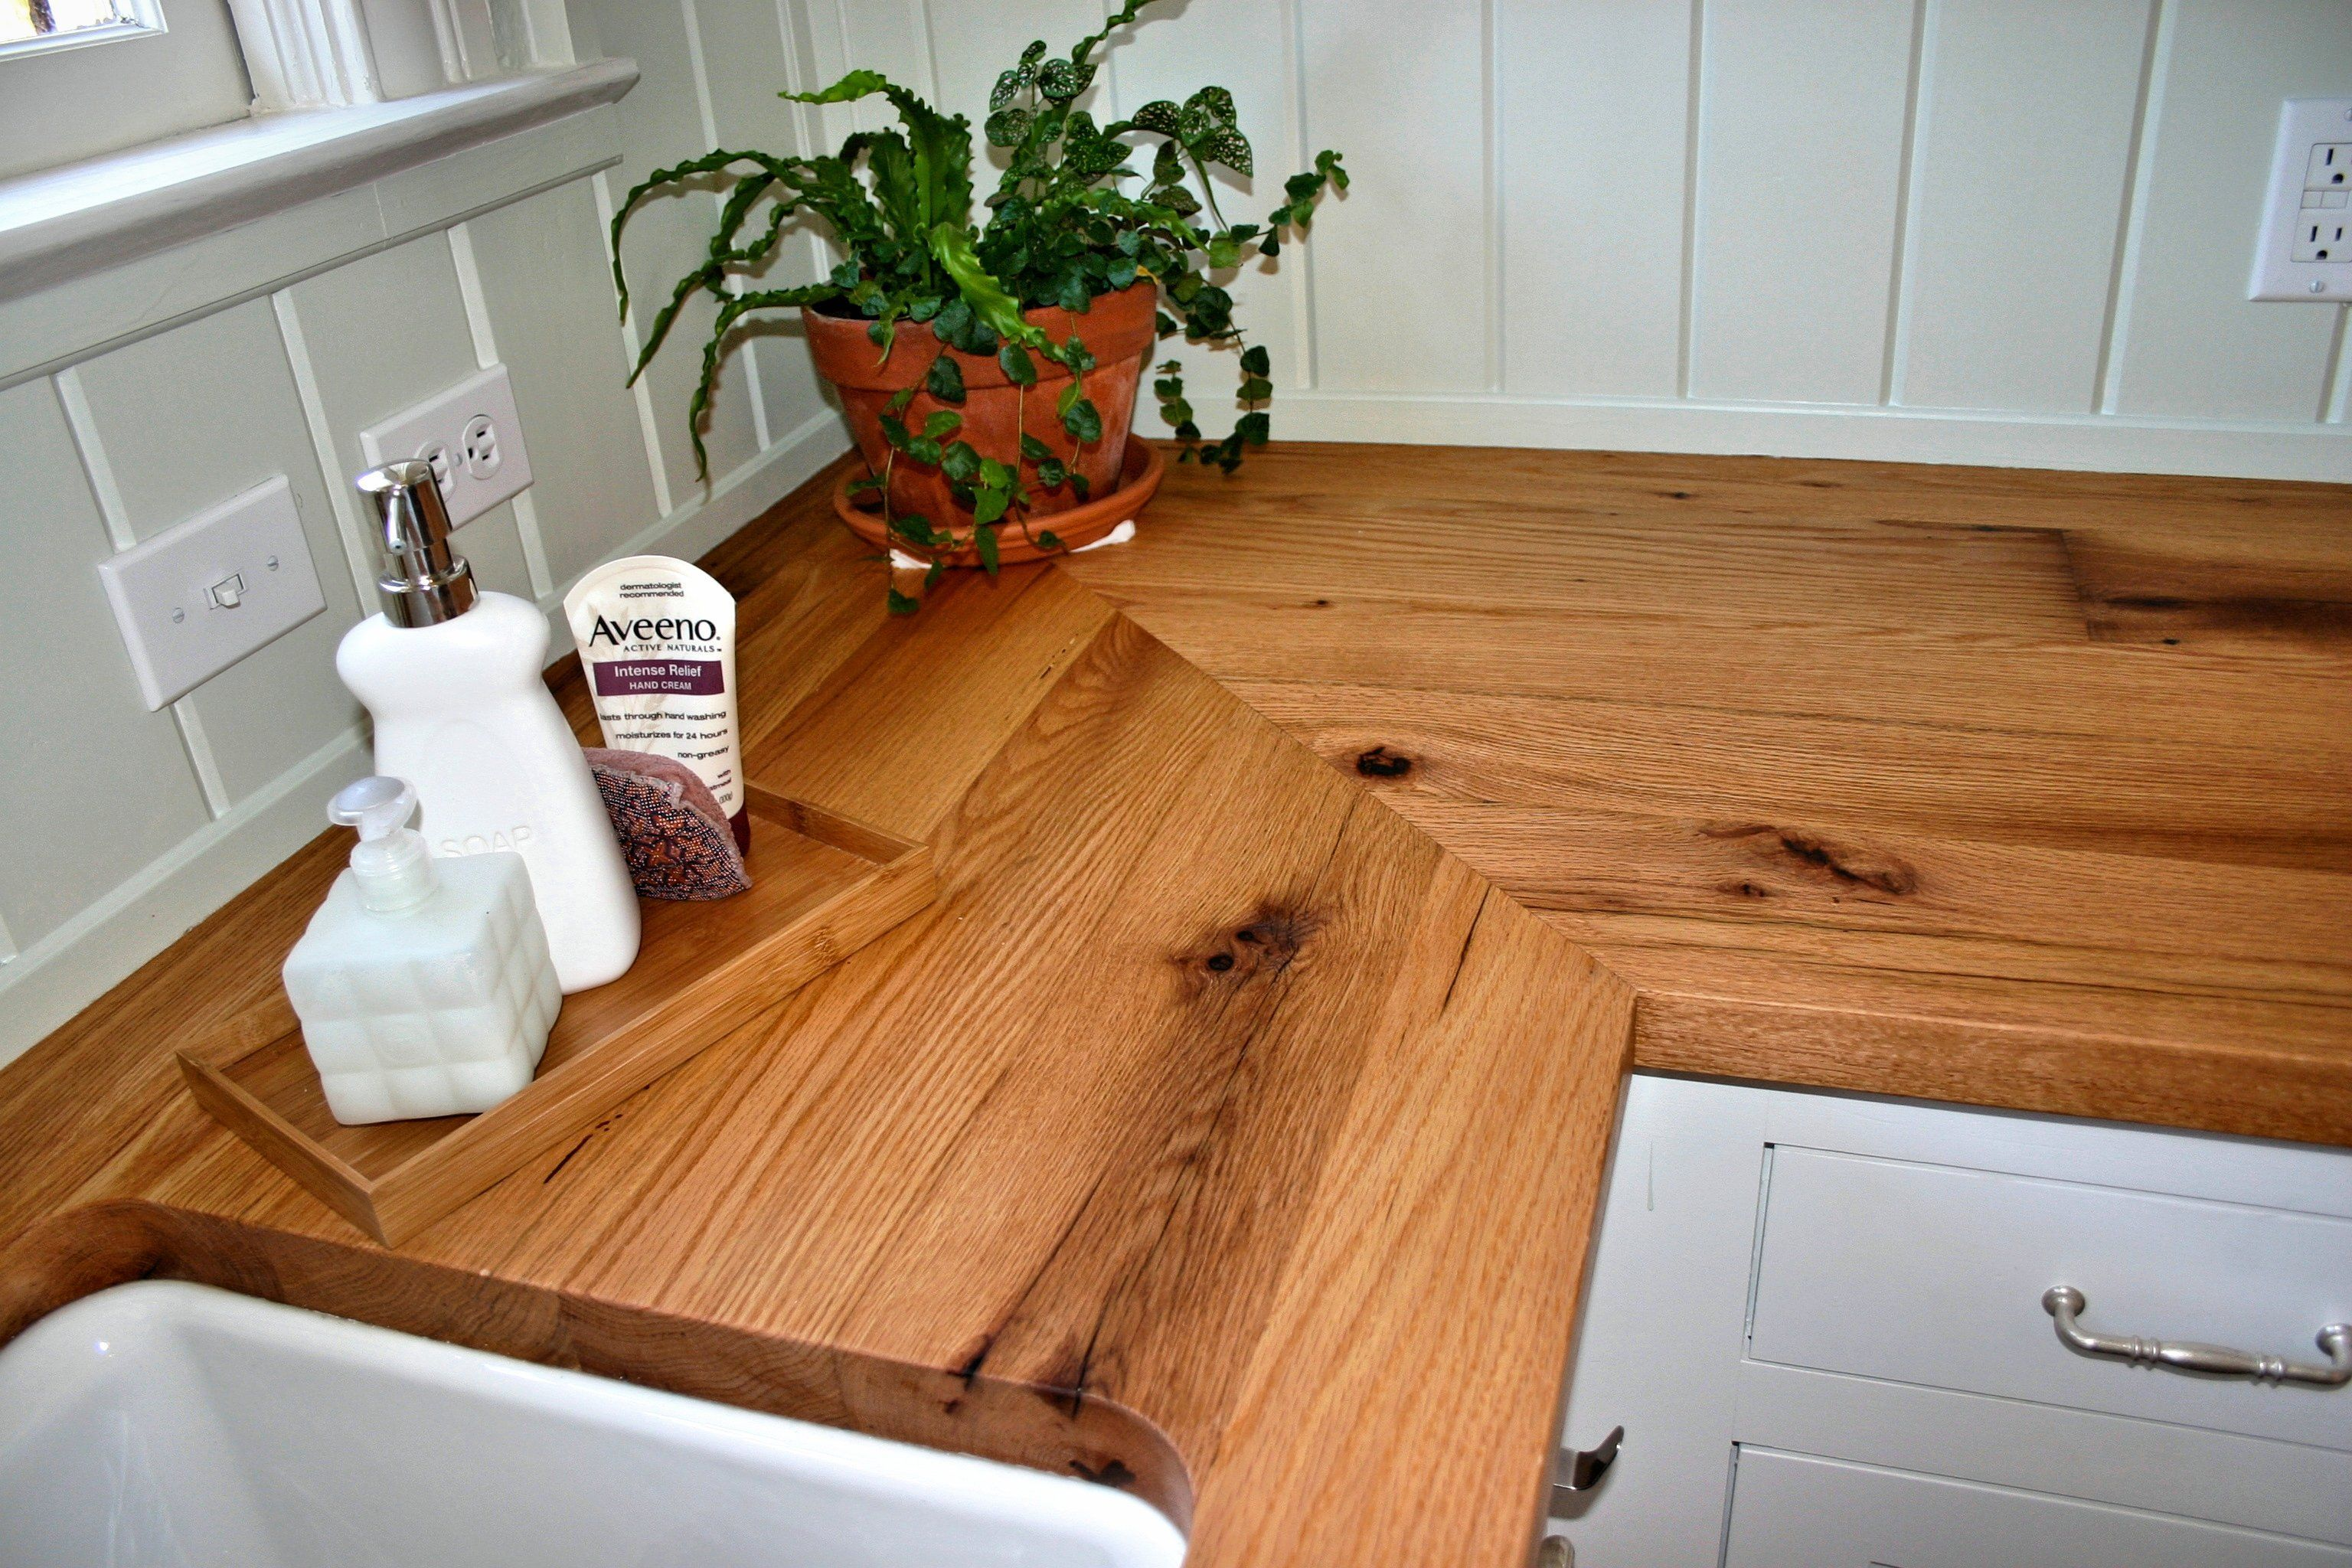 Custom Wood Countertop Options Joints For Multi Section Tops Wood Grain Laminate Countertops Wood Countertops